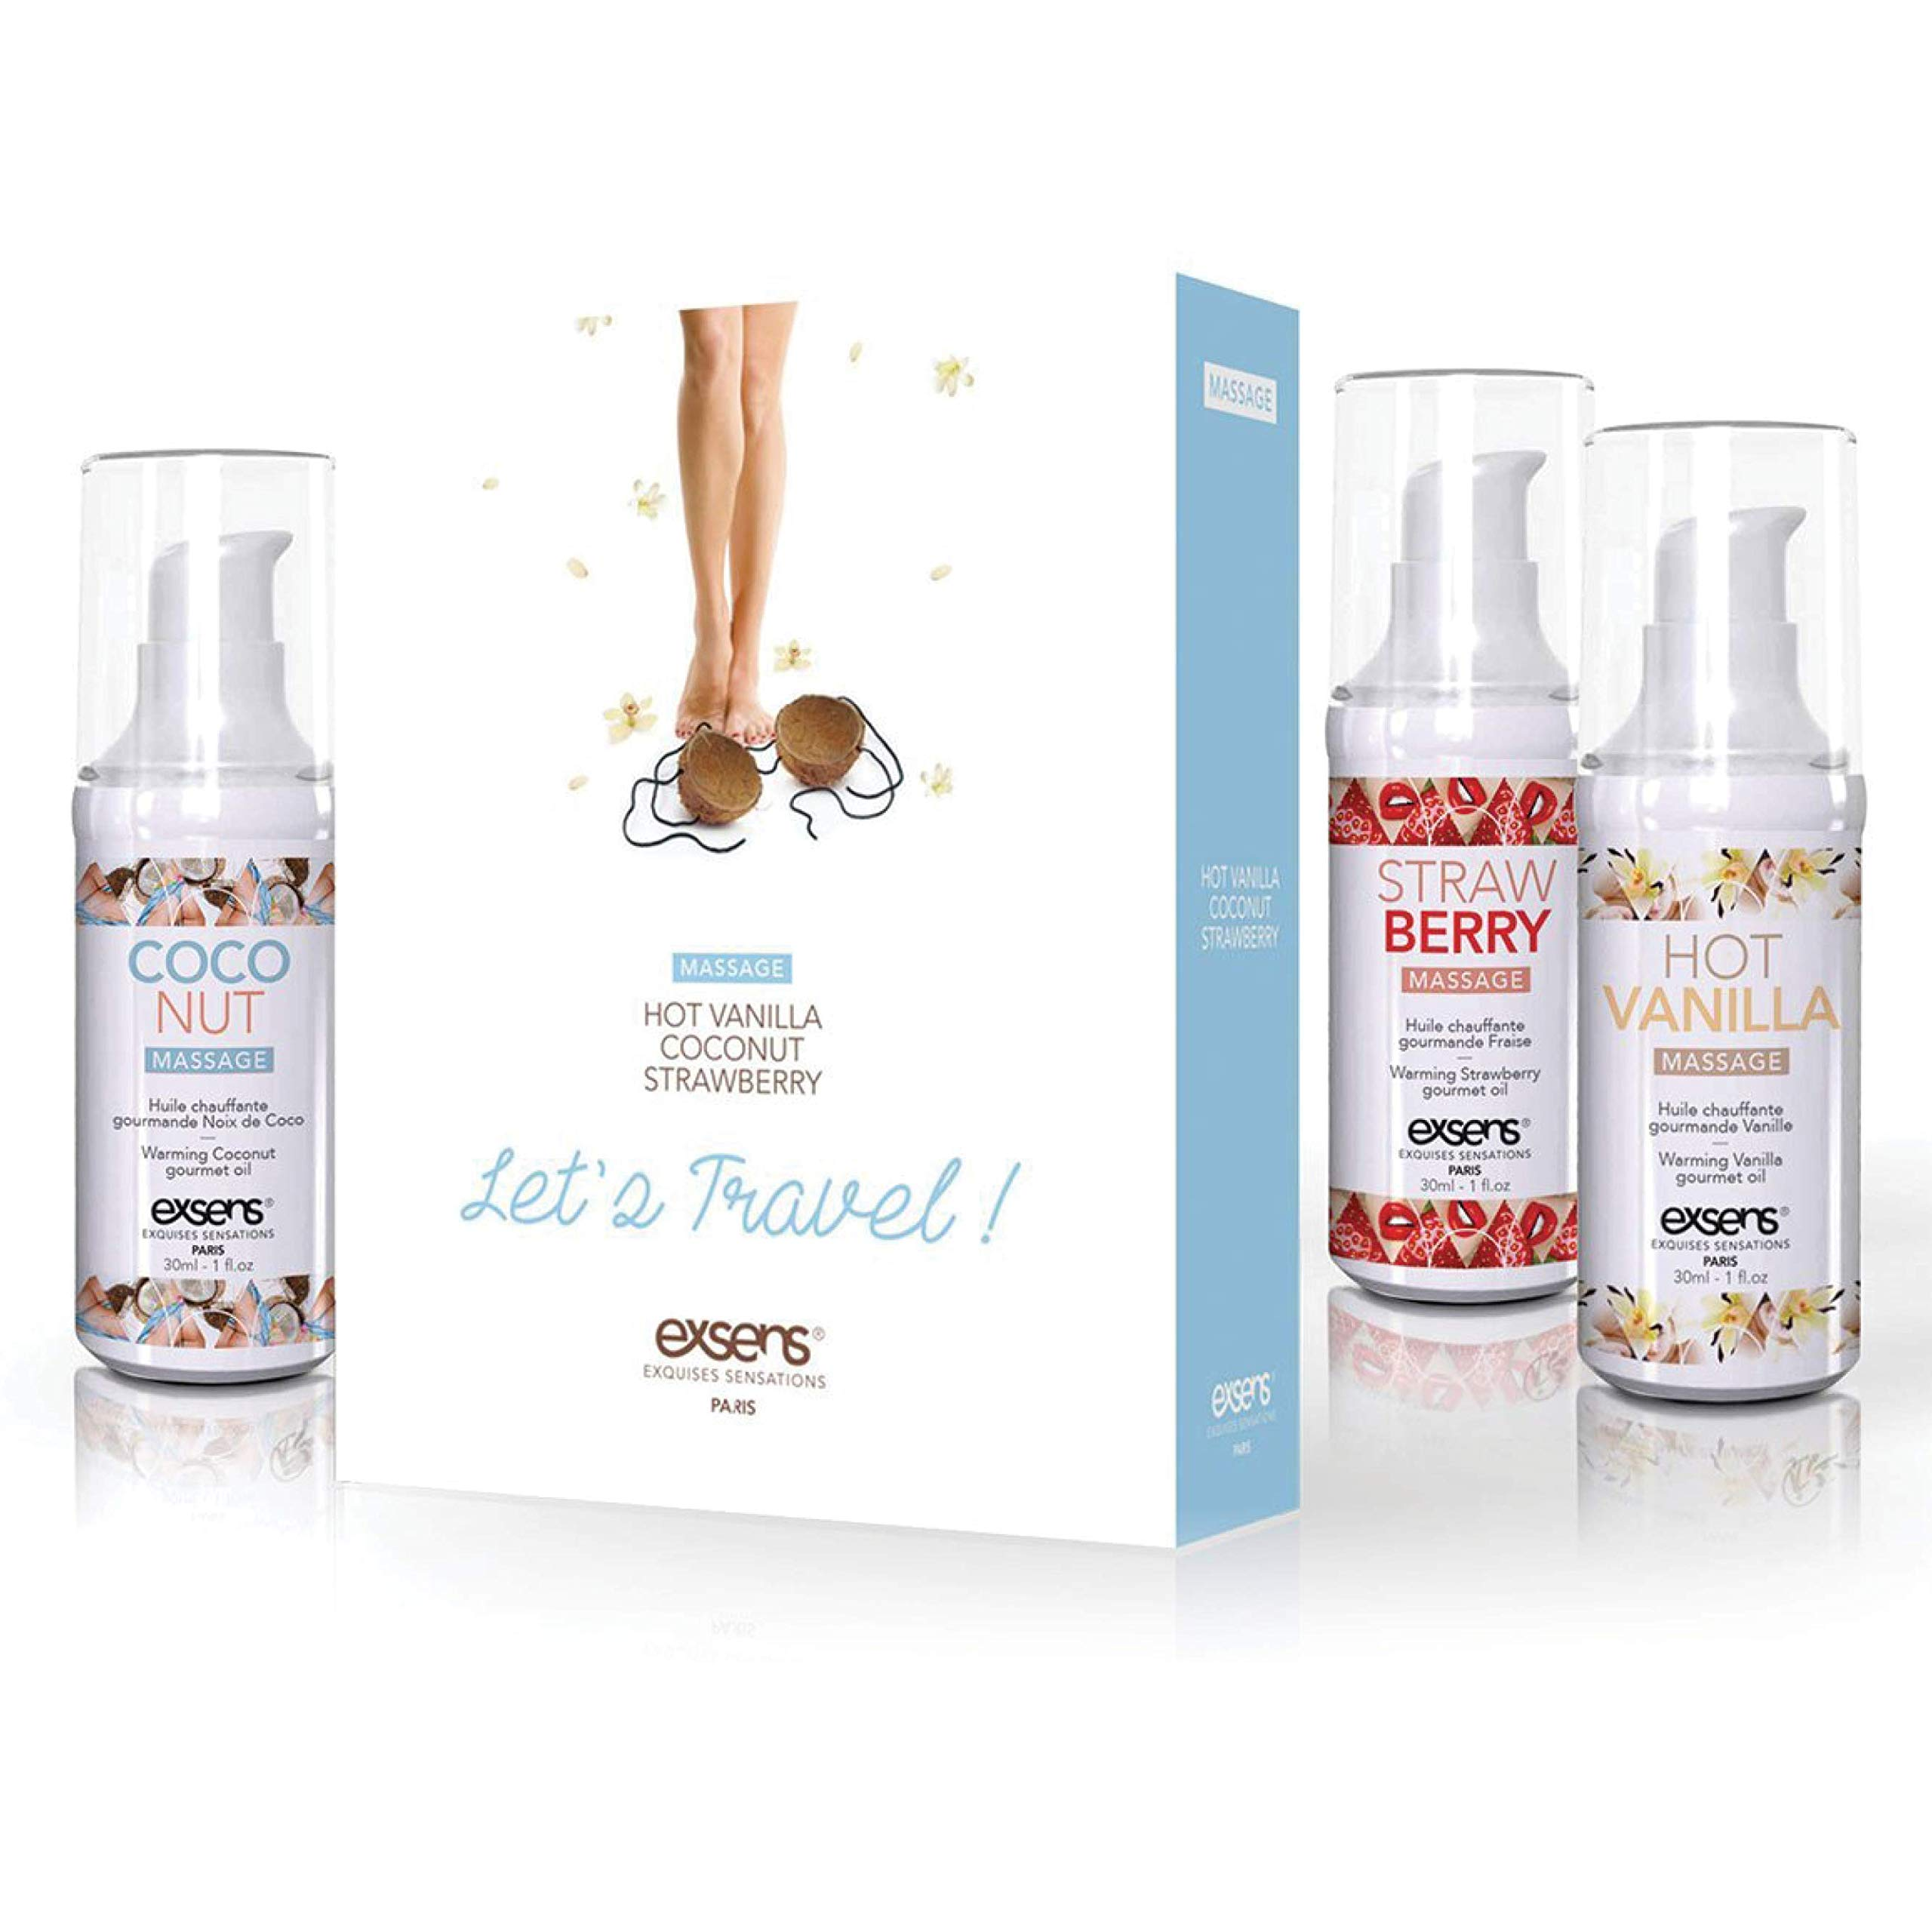 Exsens Let's Travel Warming Intimate Massage Oil Kit, Flavored Gel Gift Set, Strawberry, Coconut, and Hot Vanilla Flavor, Certified Vegan, 3 - 1 fl.oz Bottles